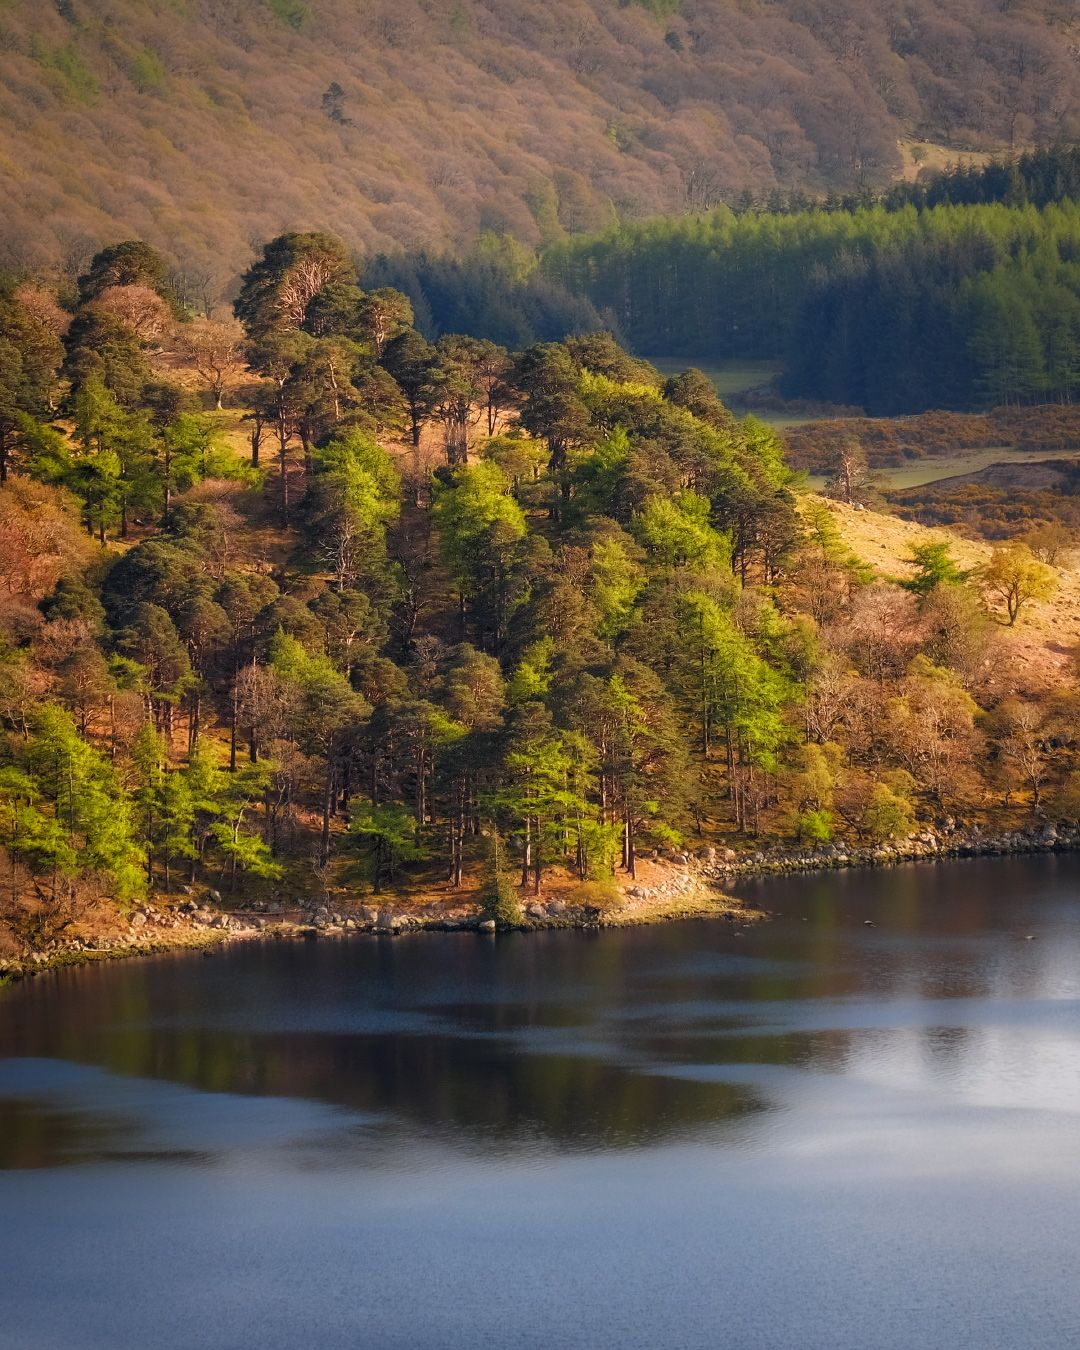 ...пёстрые берега... ireland wicklow tay guiness lake luggala nature outdoors landscape from above slopes hills mountains trees pine scenic scenery picturesque awe wonderful europe reflection variegated light soft tones tints